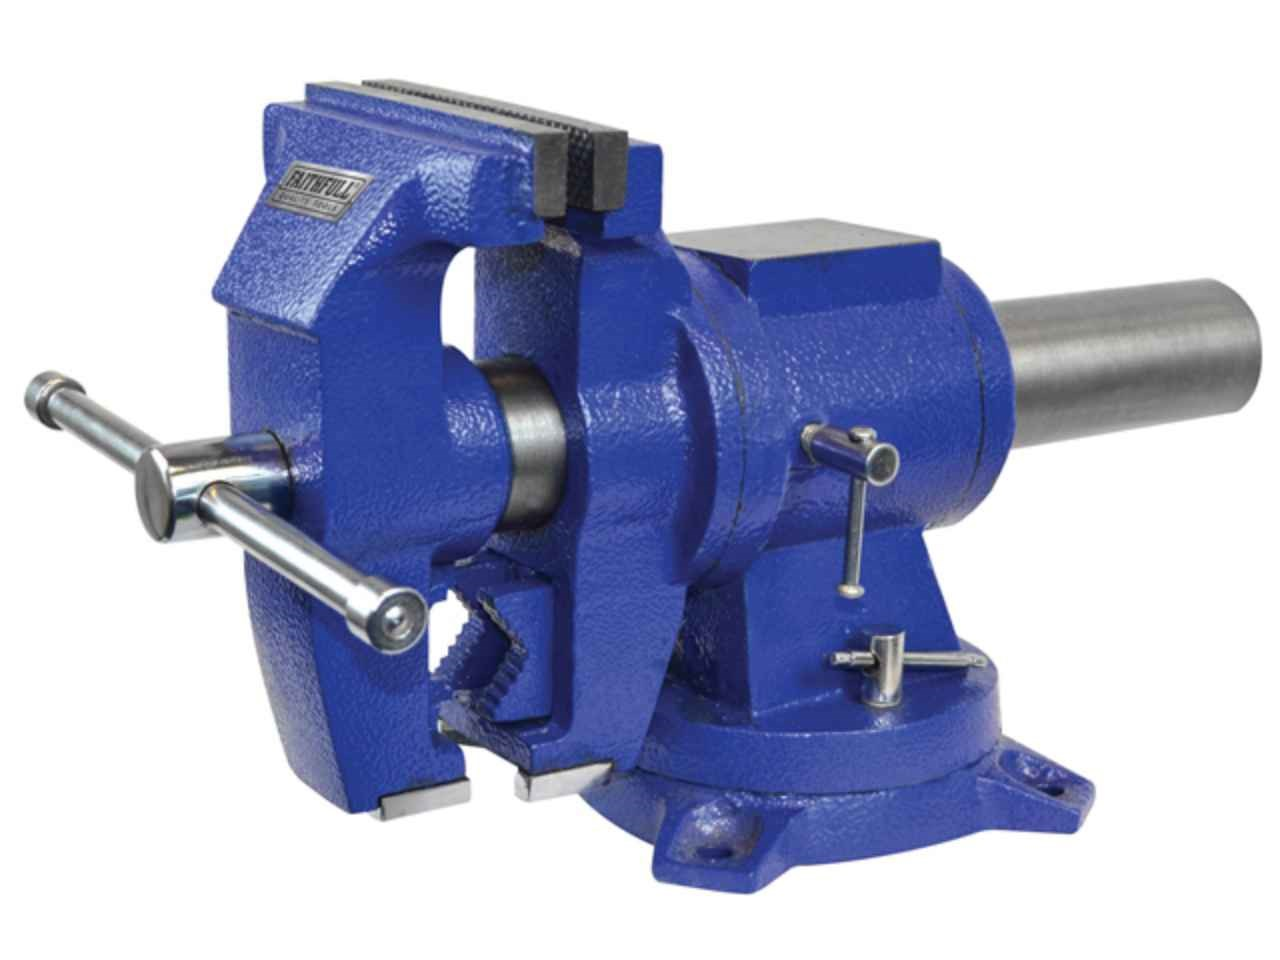 7 Inches Workbench Vise Table Bench Vise top Clamp Clamps